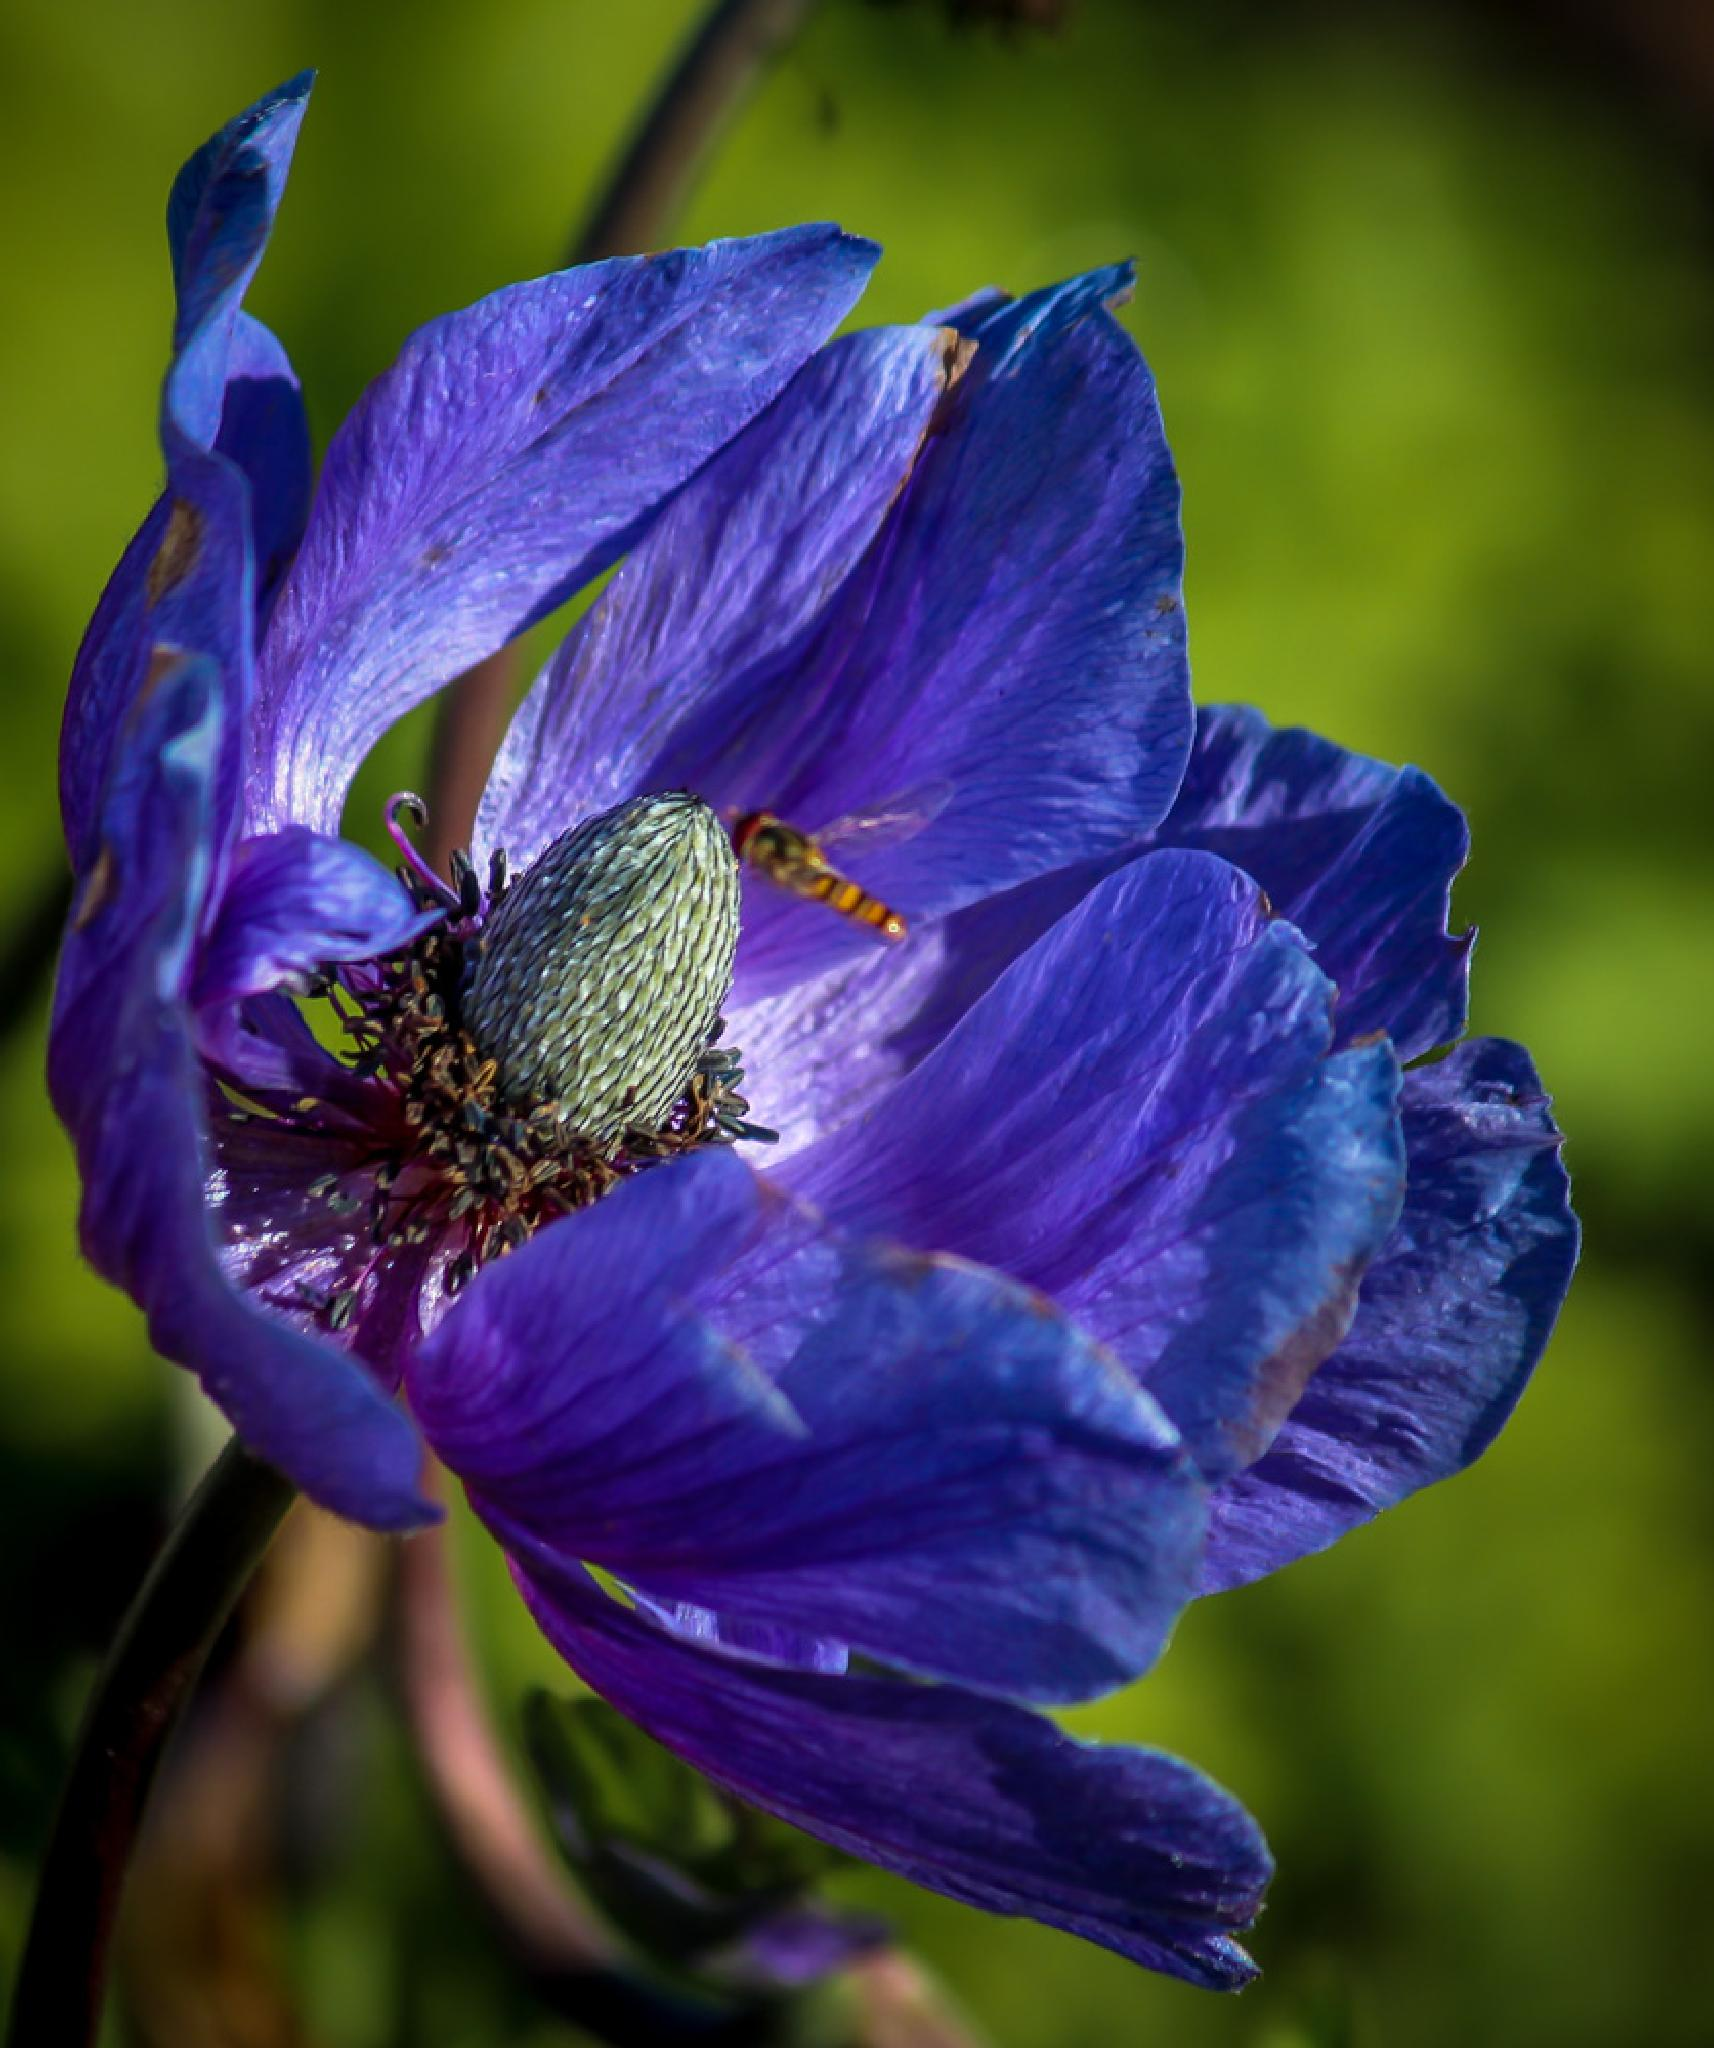 Blue anemone by barbro.hansson.9